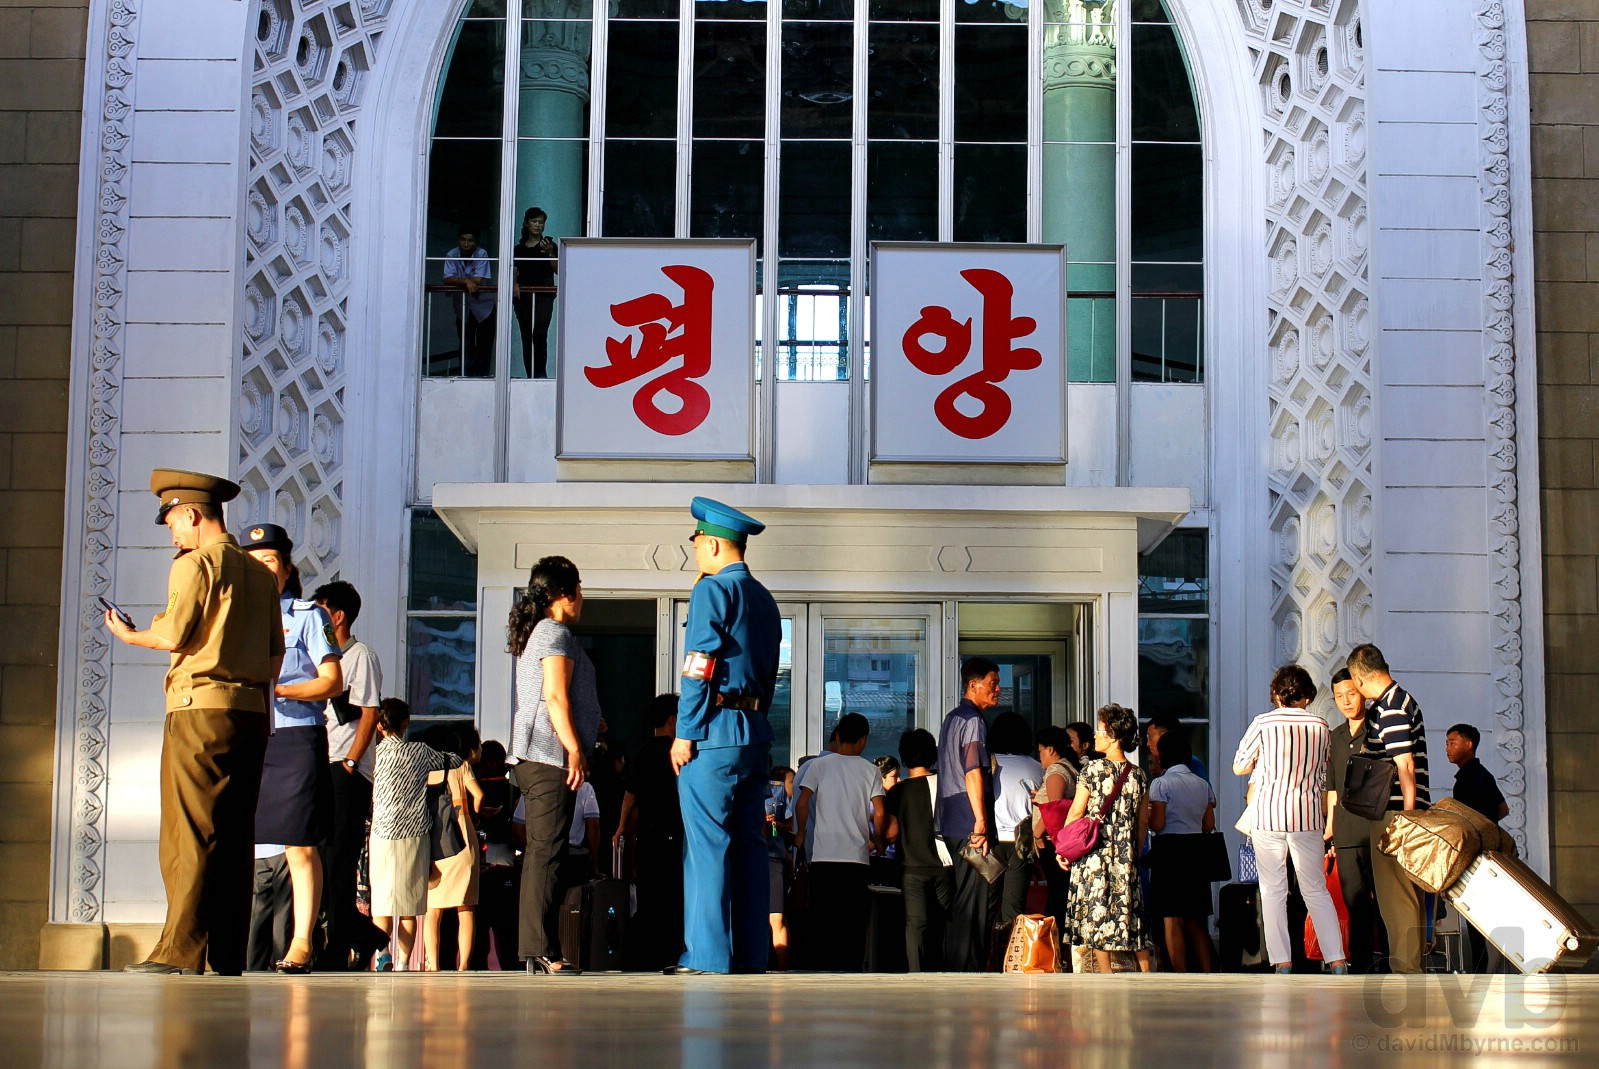 Late evening light on the platform of Pyongyang train station in Pyongyang, North Korea. August 14, 2017.